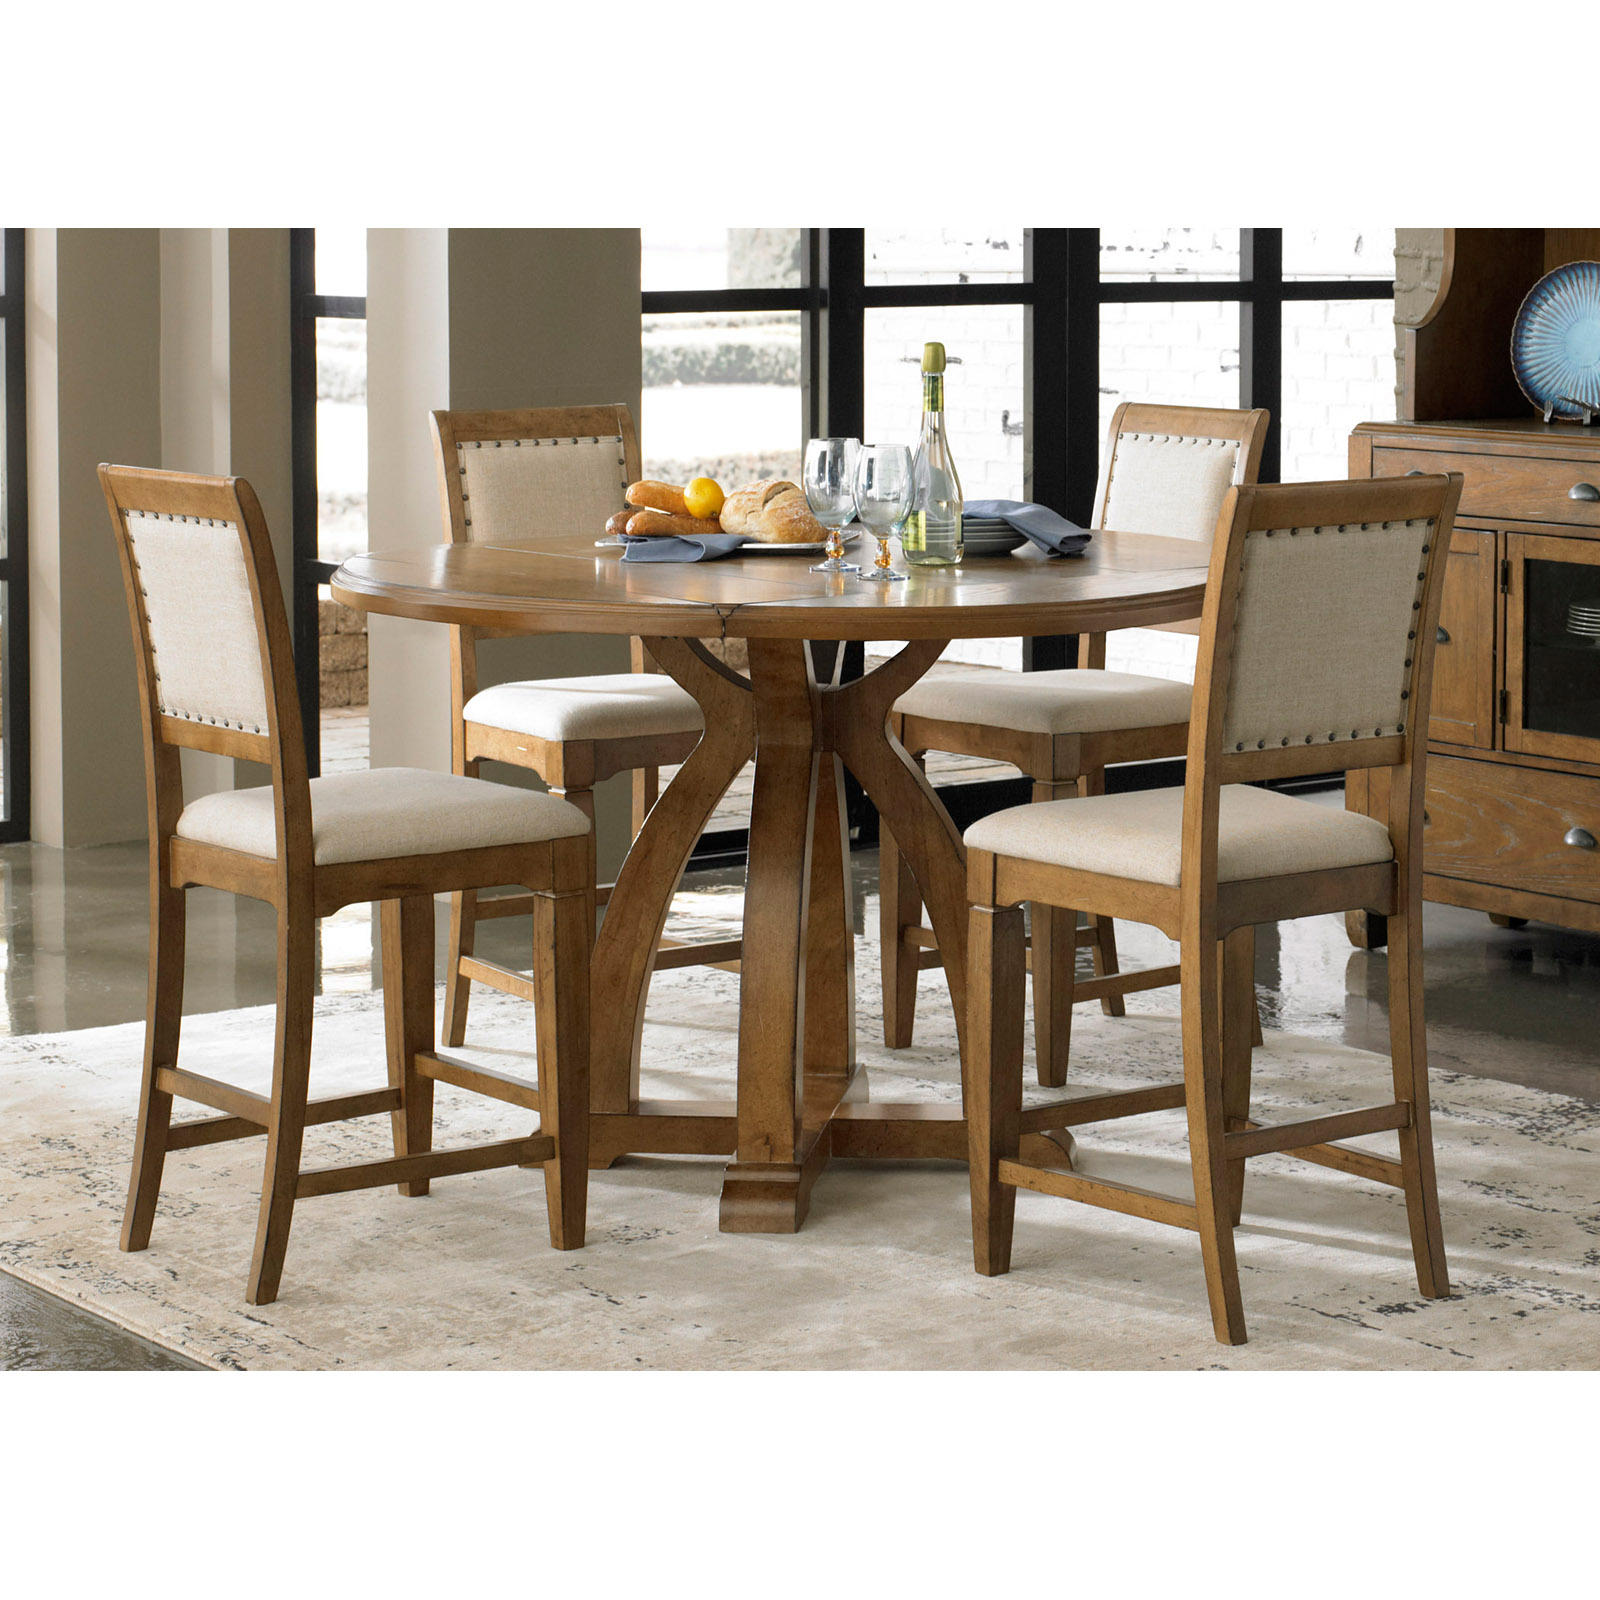 Stanton Counter Height Dining Table In Black: Liberty Furniture Stanton 5-piece Counter-Height Gathering